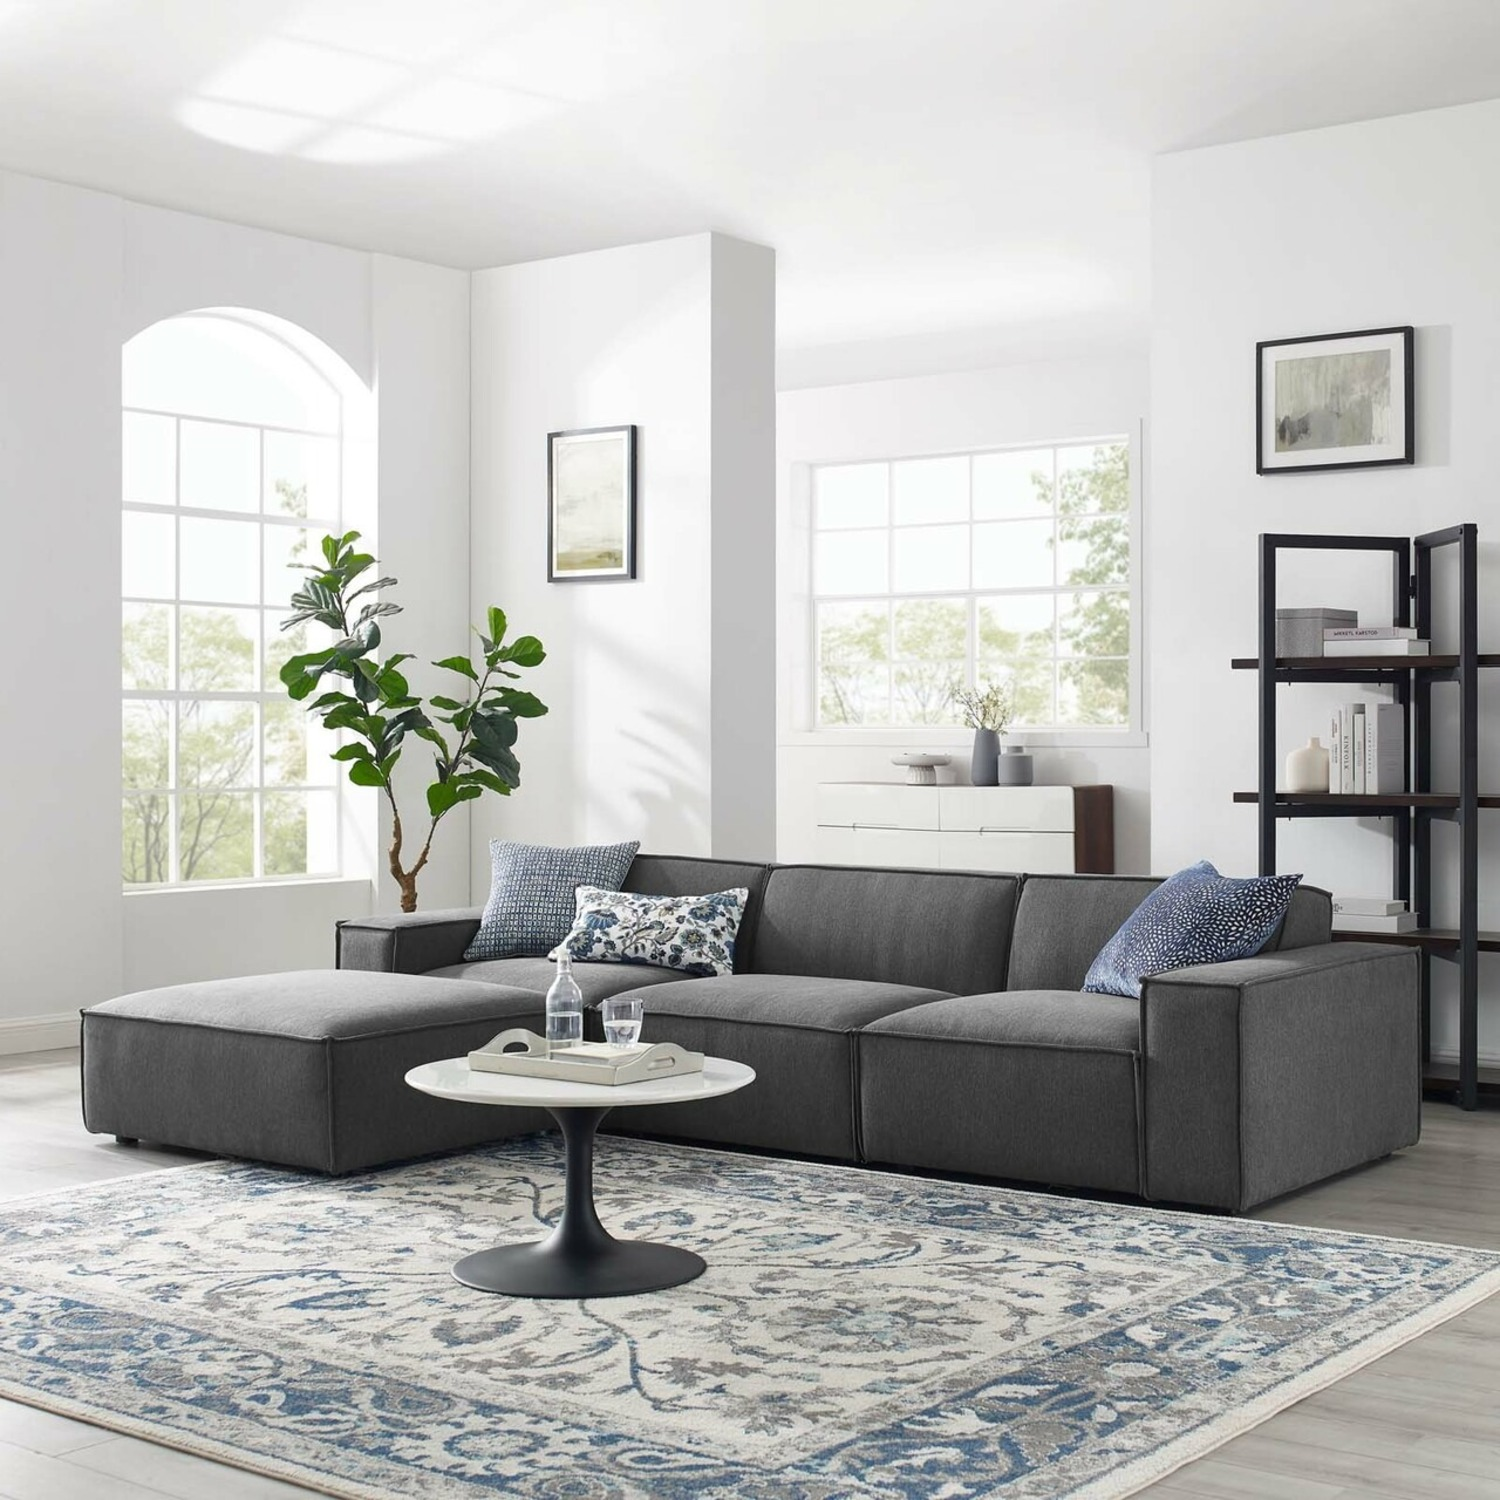 4-Piece Sectional Sofa In Charcoal Fabric Finish - image-10